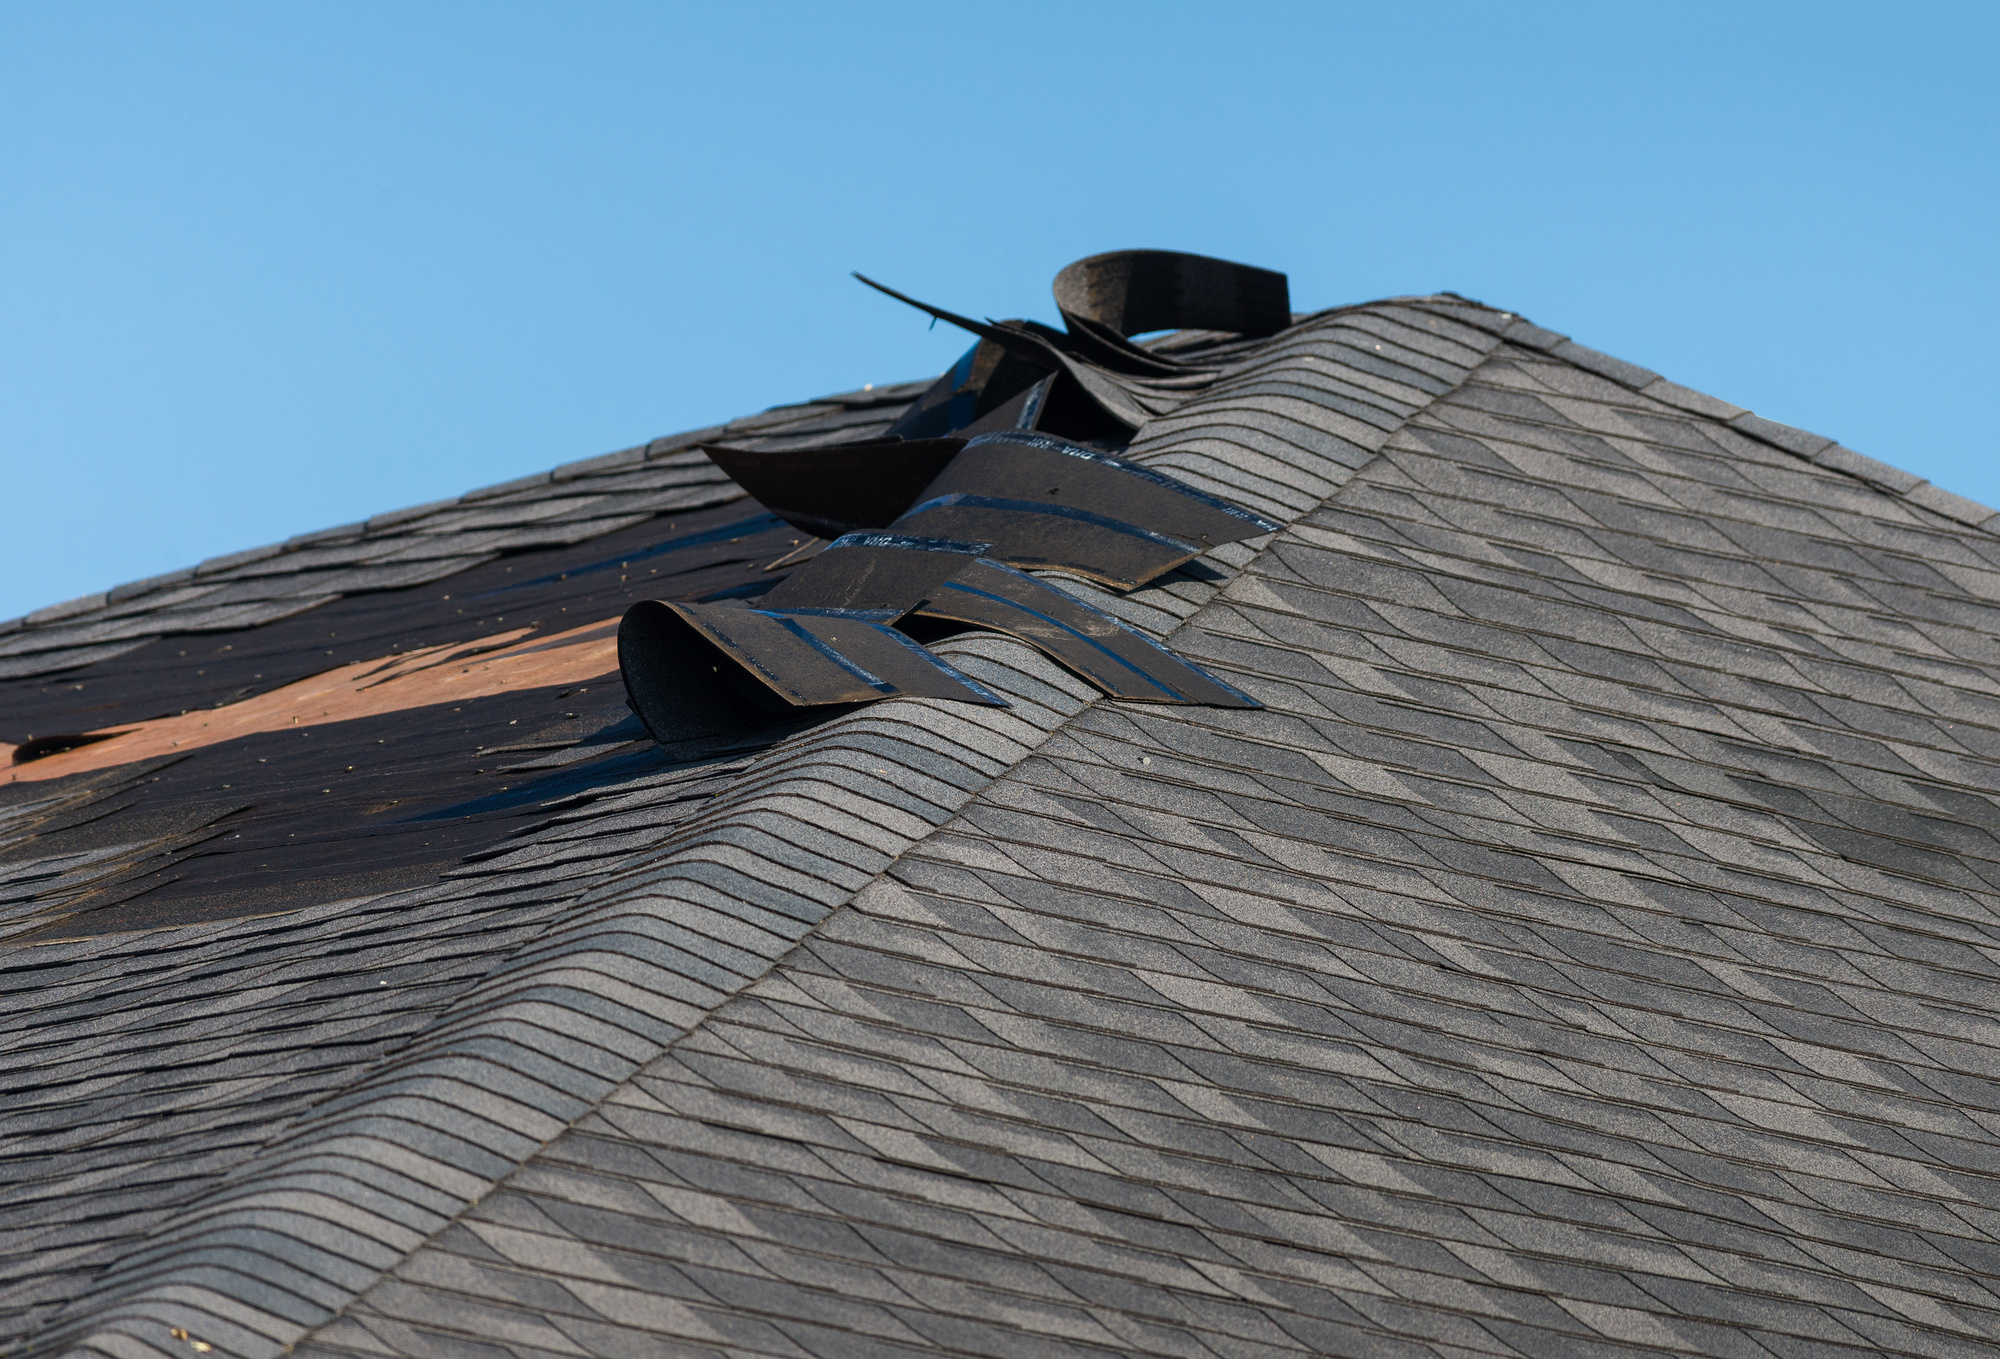 Common Signs of Roof Damage Homeowners Should Know